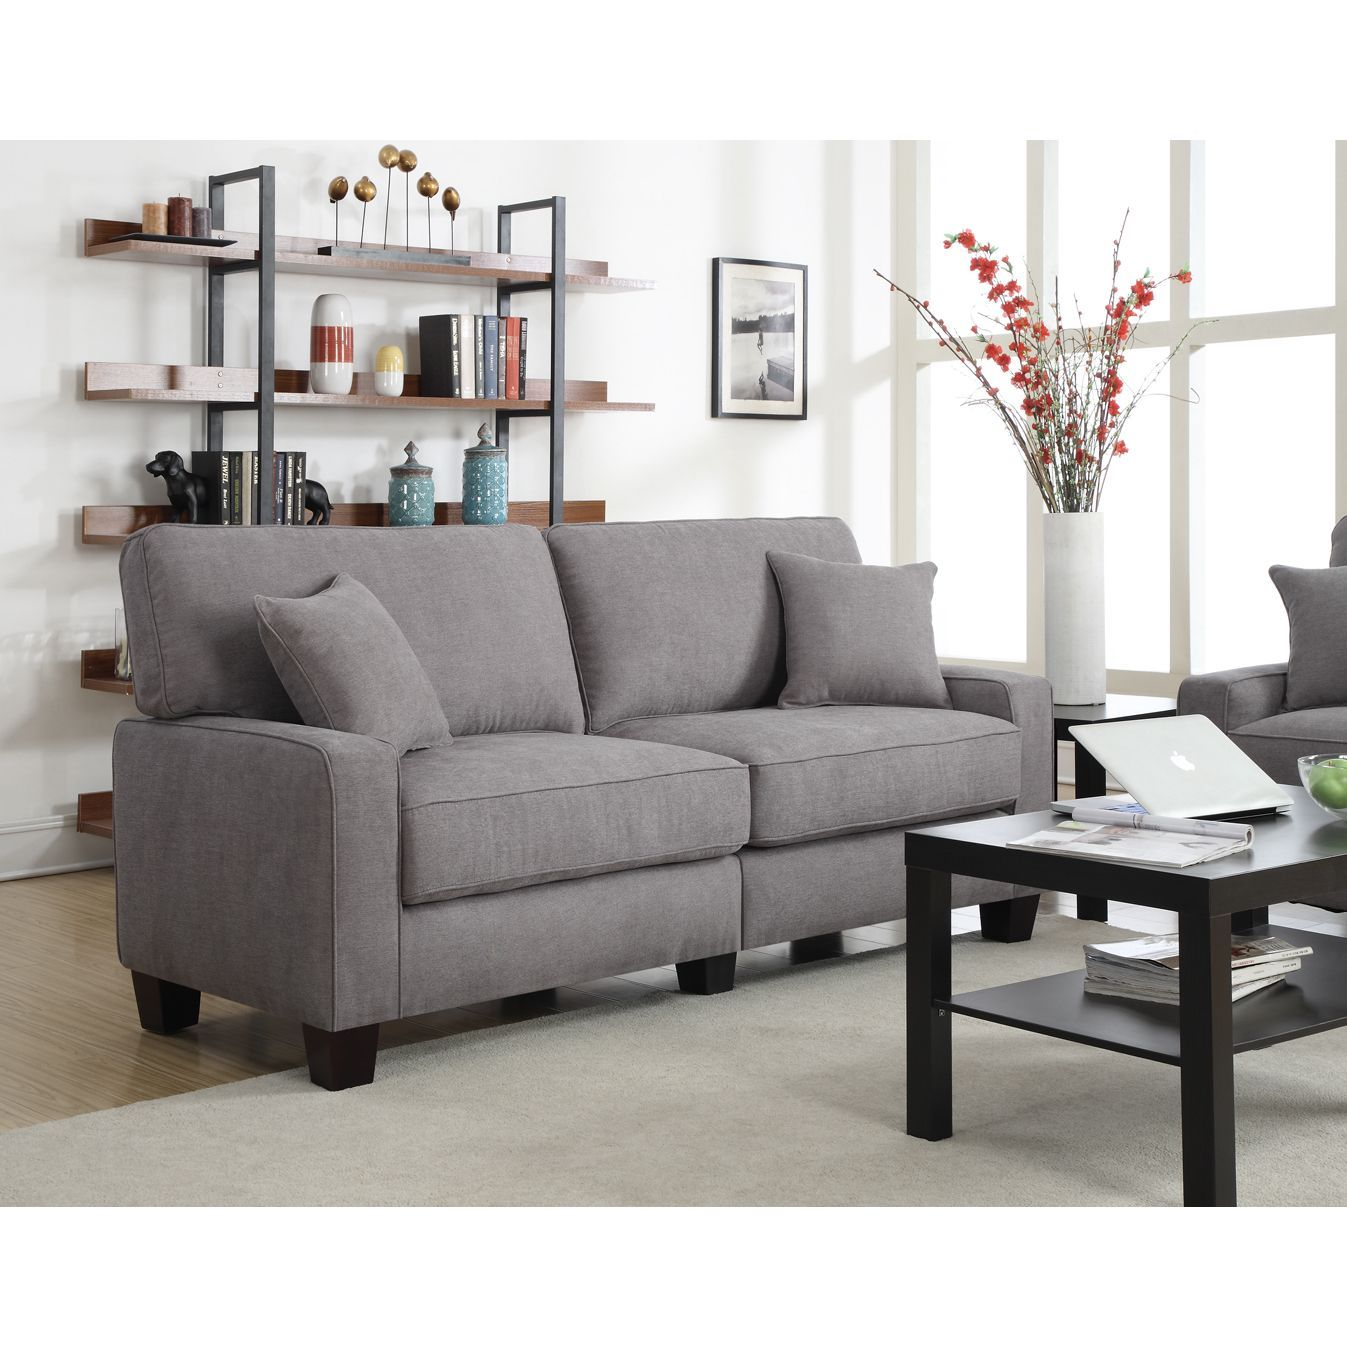 Serta RTA Martinique Collection 61 Inch Kona Grey Fabric Loveseat Sofa